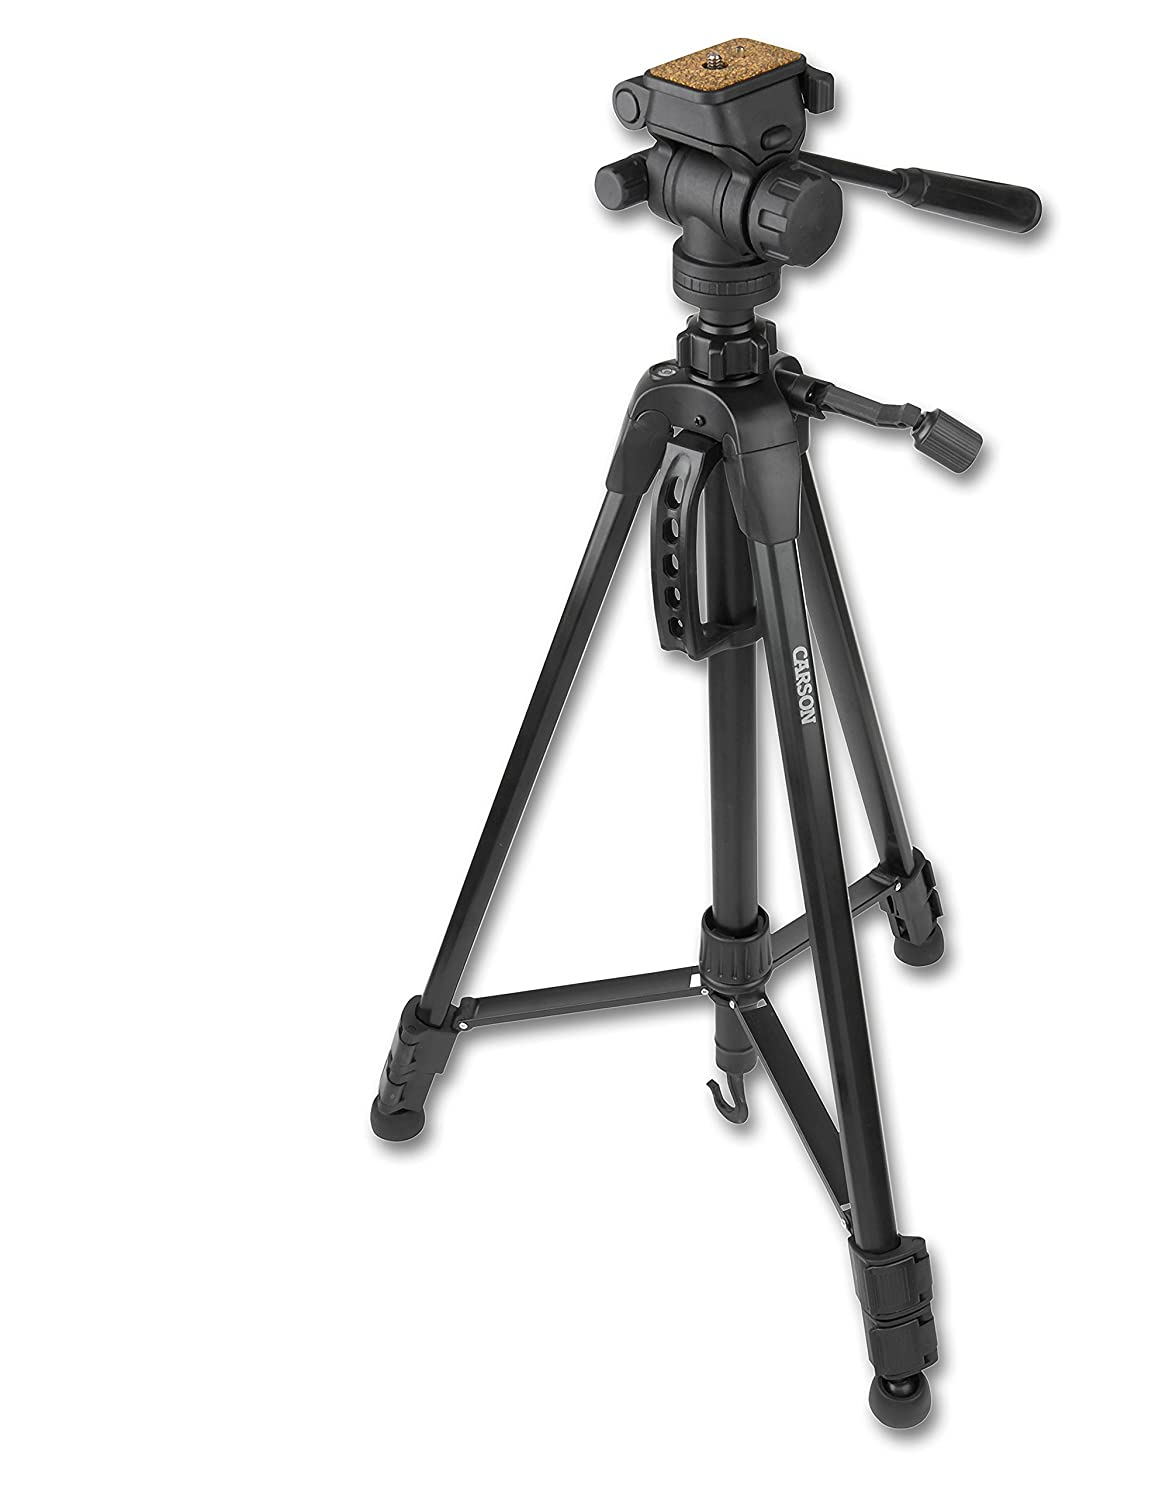 Carson TriForce Series 3-Way Fluid Panhead Aluminum Lightweight Tripods for Binoculars, Monoculars, Cameras, Spotting Scopes and More